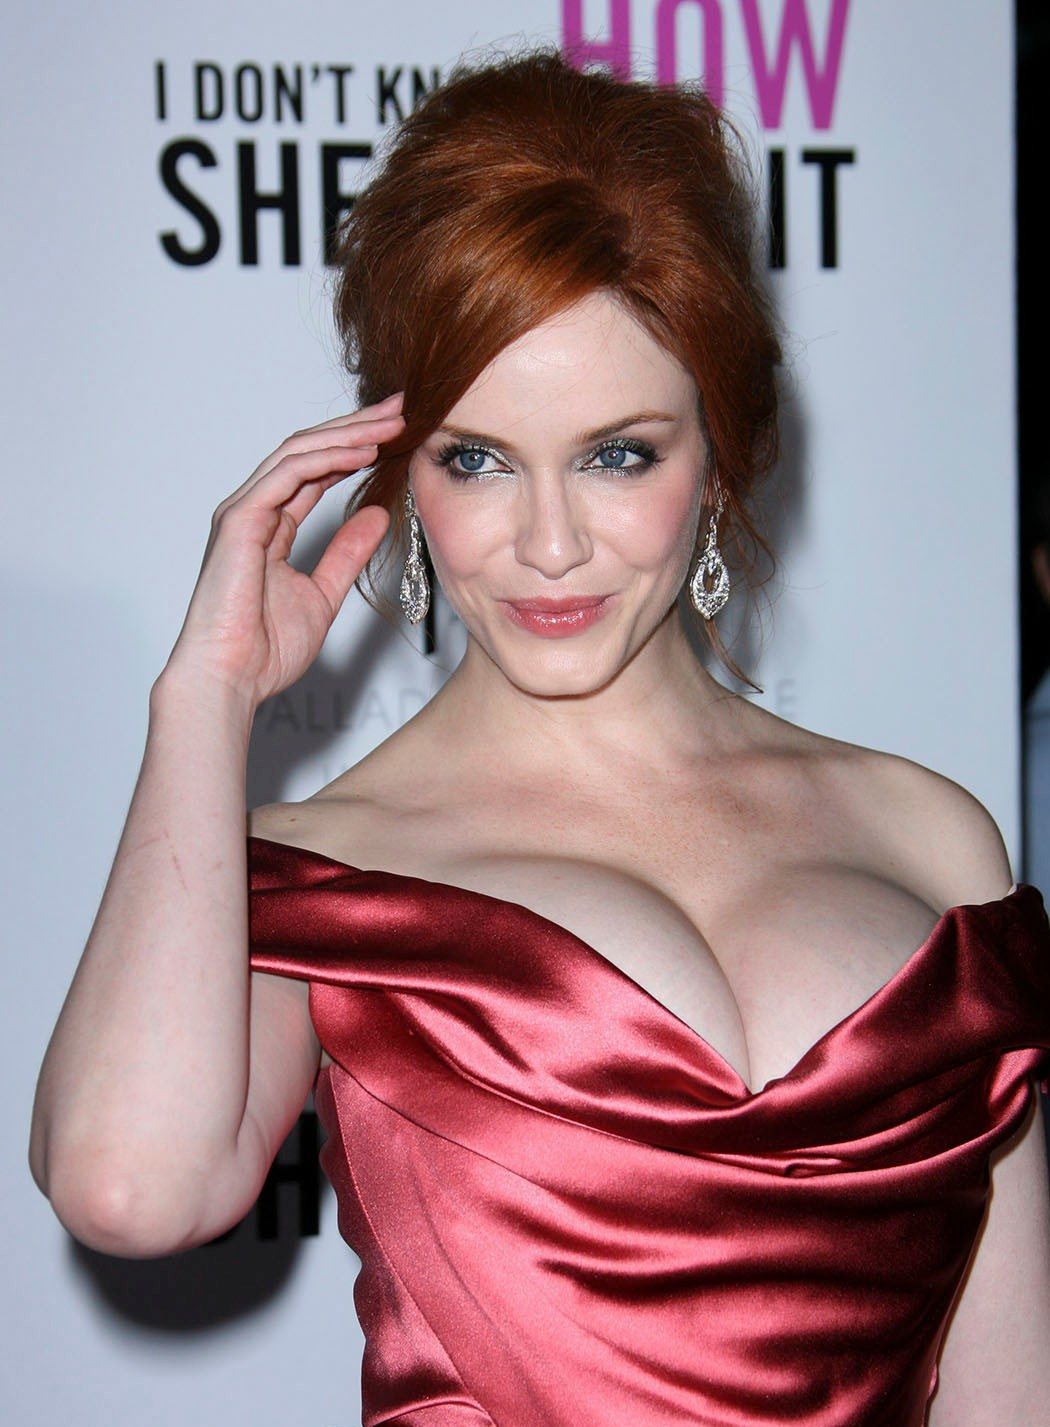 Christina Hendricks Fake Breasts ~ 6-k pics james franco ...